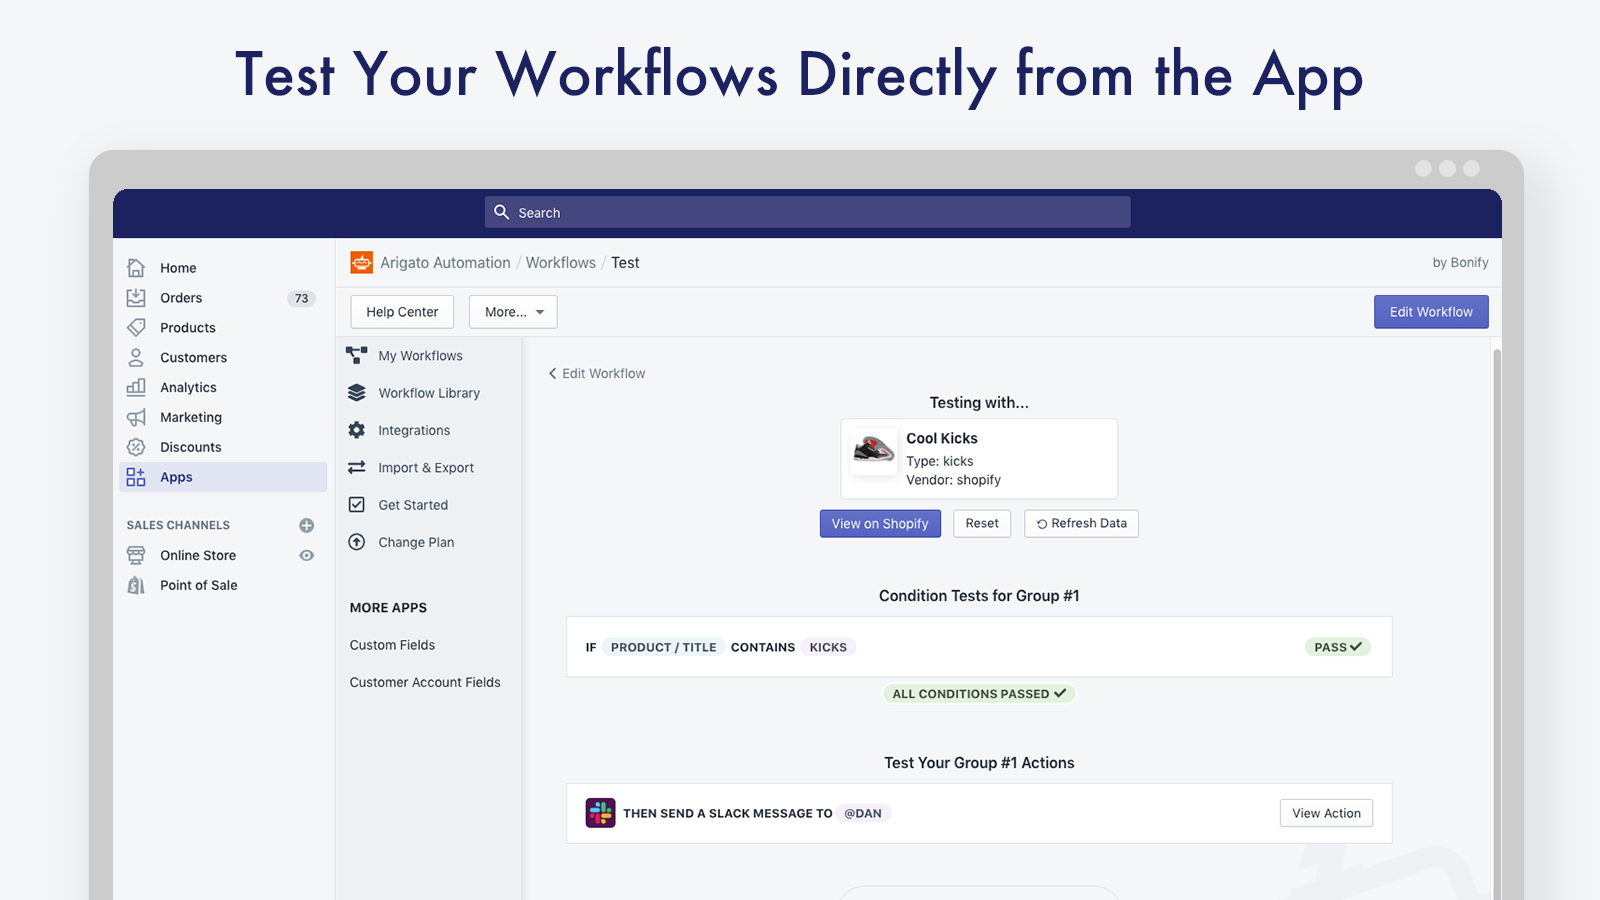 Test your workflows directly from the app